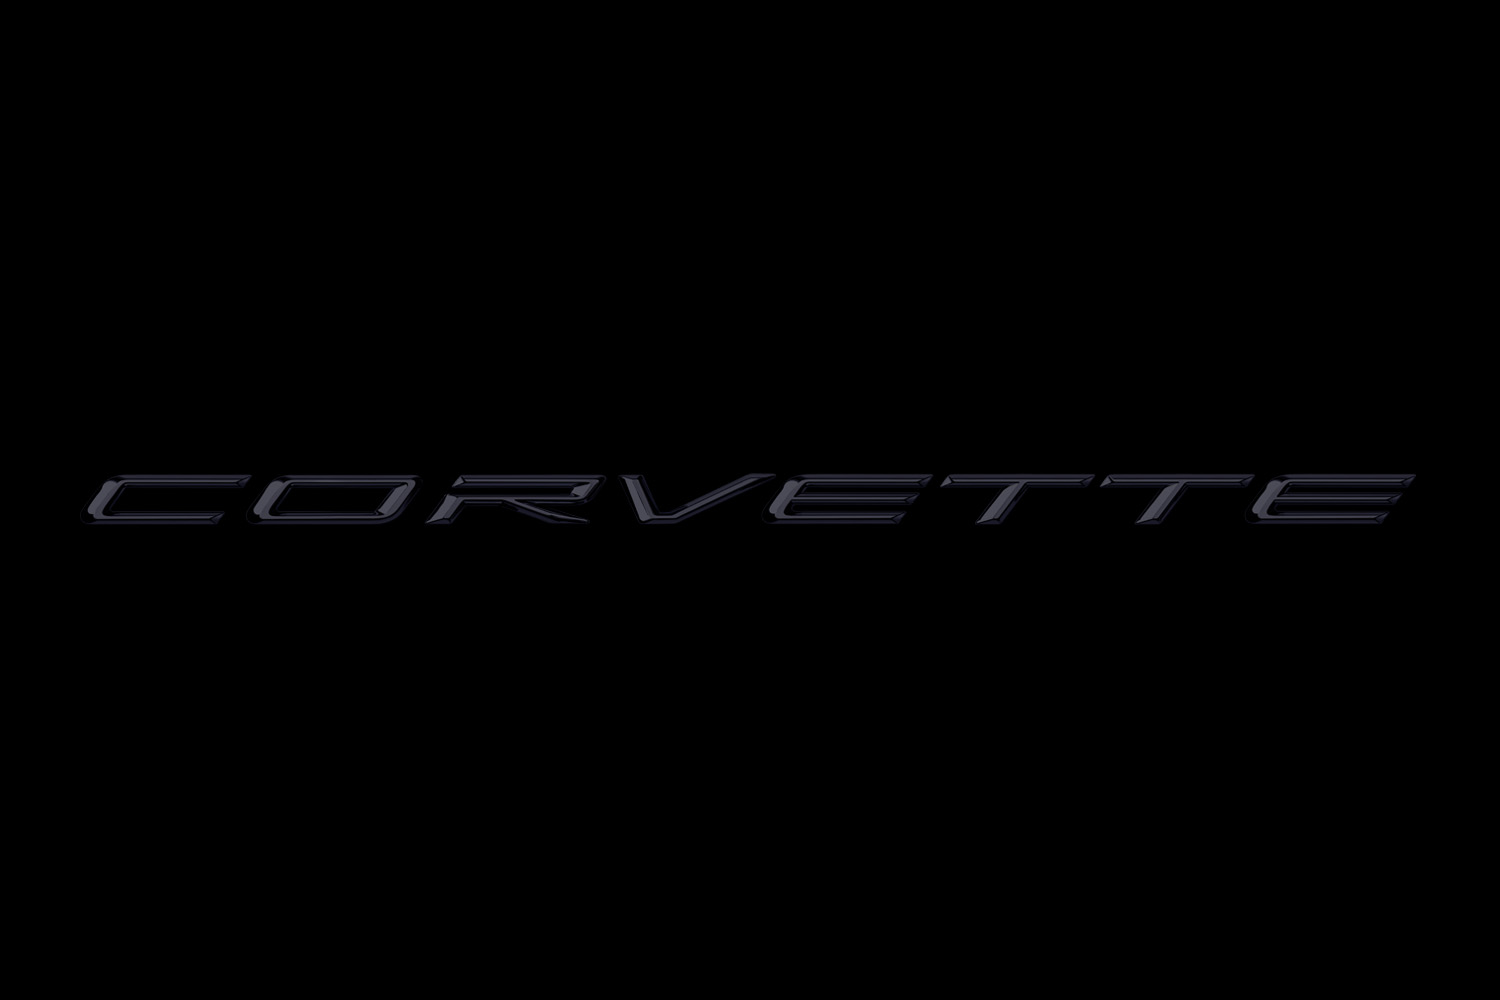 2020 Corvette Signature in Carbon Script on Black